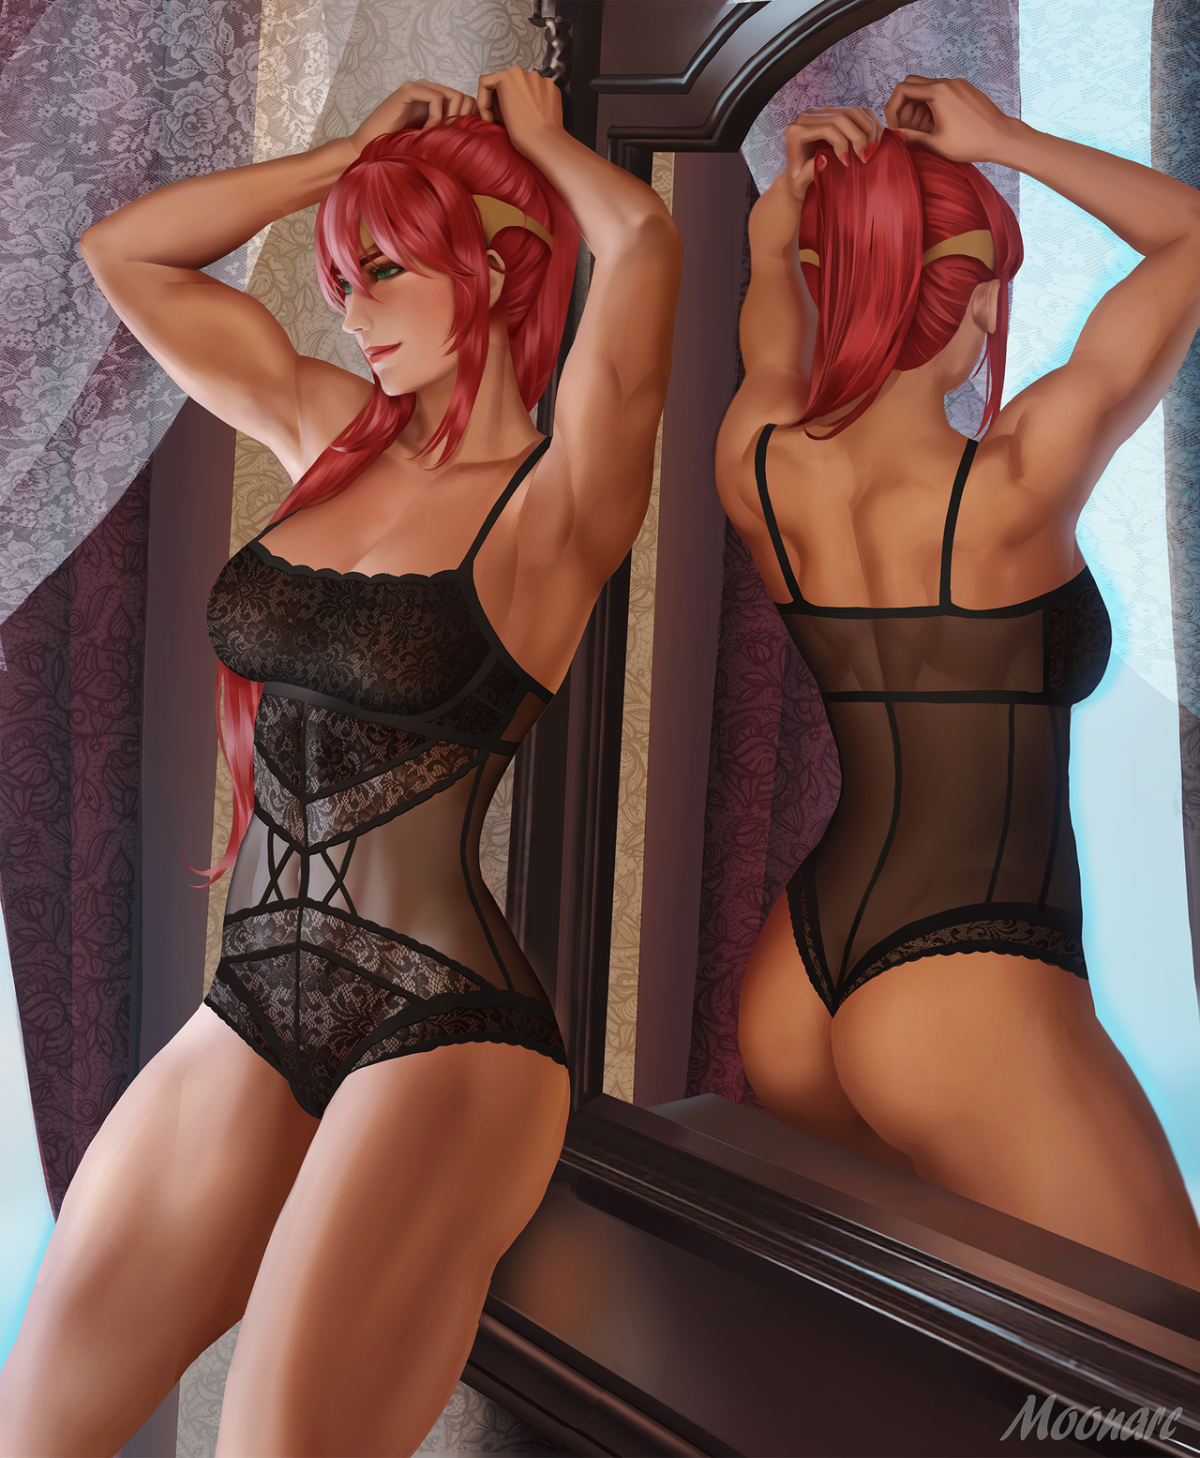 red haired girl mirror by moonarc